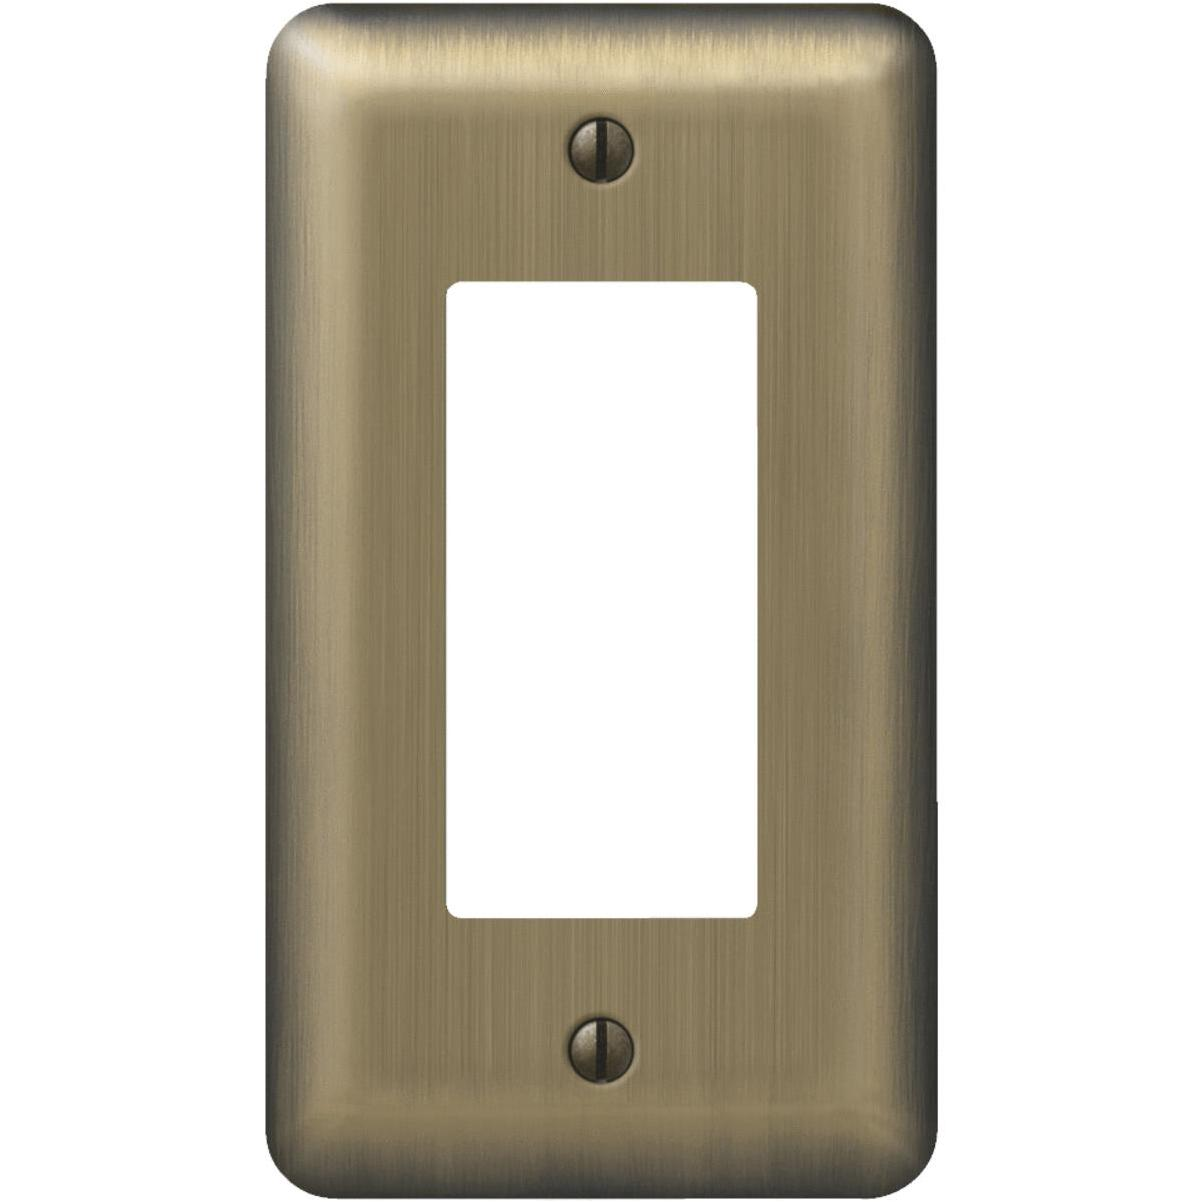 Amerelle 1 Gang Stamped Steel Rocker Decorator Wall Plate Brushed Brass Trinity Lumber